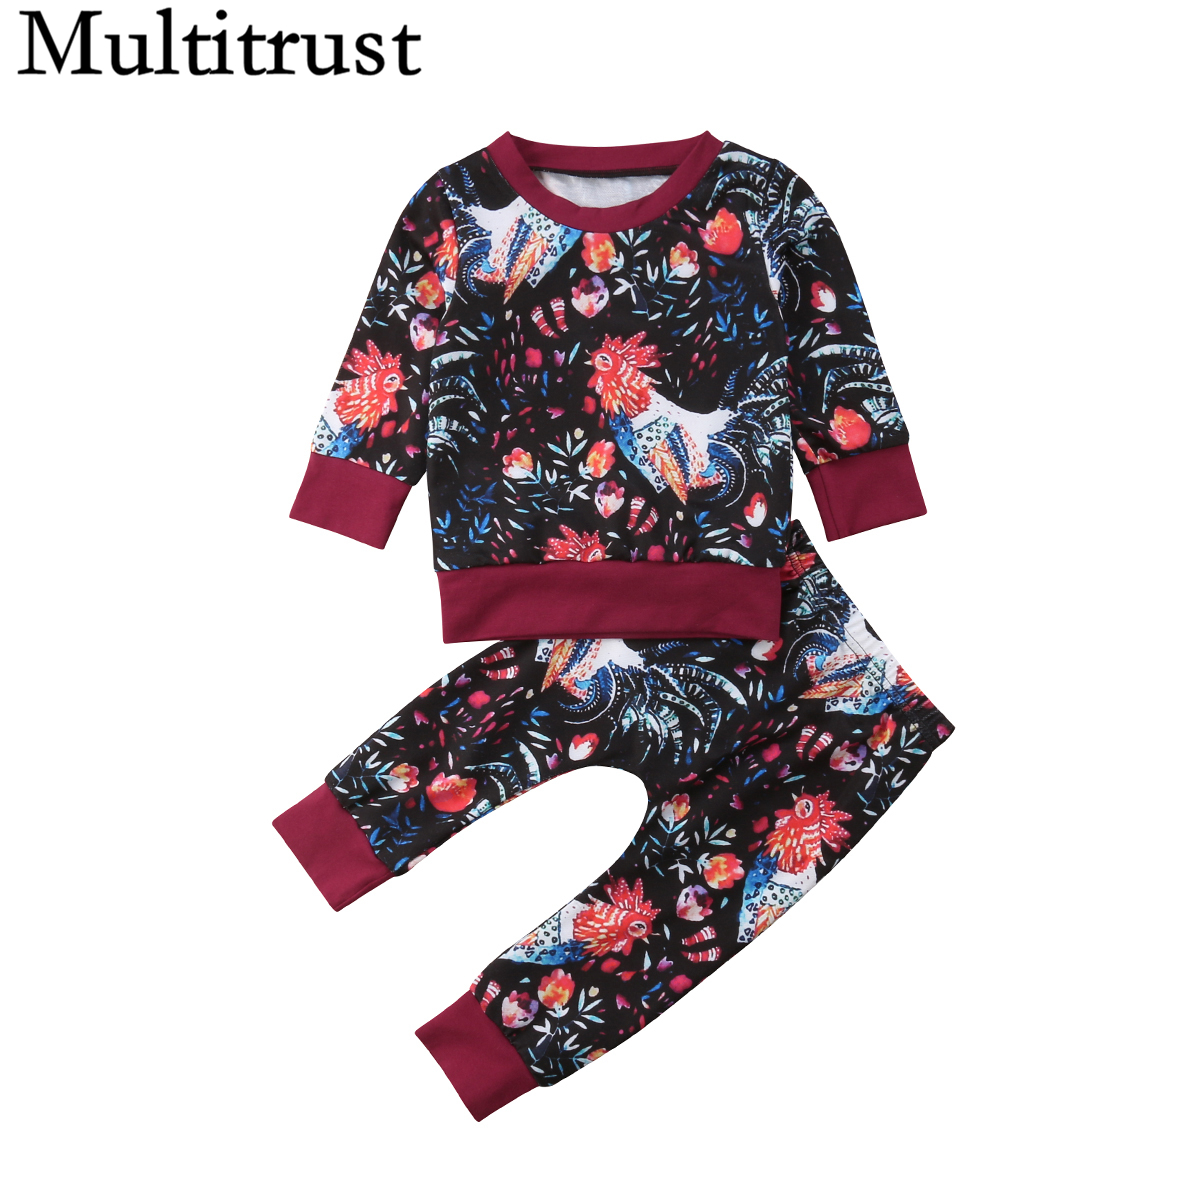 2PCS Toddler Kids Baby Girls Clothes Sweatshirt Tops Pants Tracksuit Outfits Set